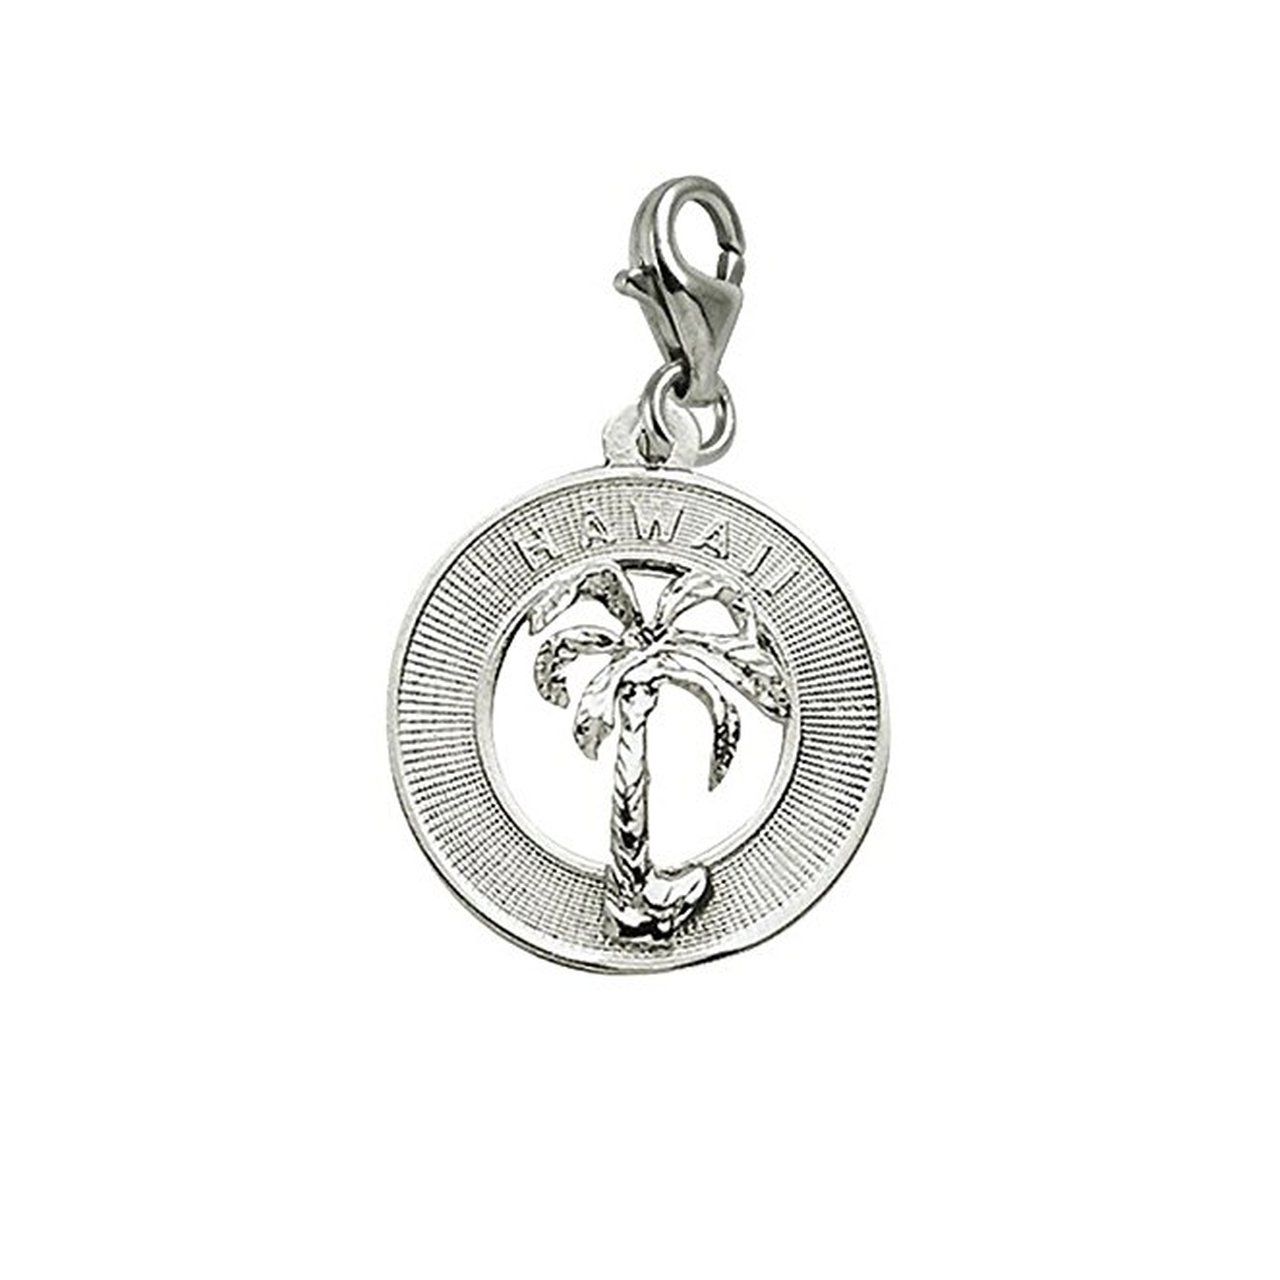 Sterling Silver Hawaii Charm With Lobster Claw Clasp, Charms for Bracelets and Necklaces